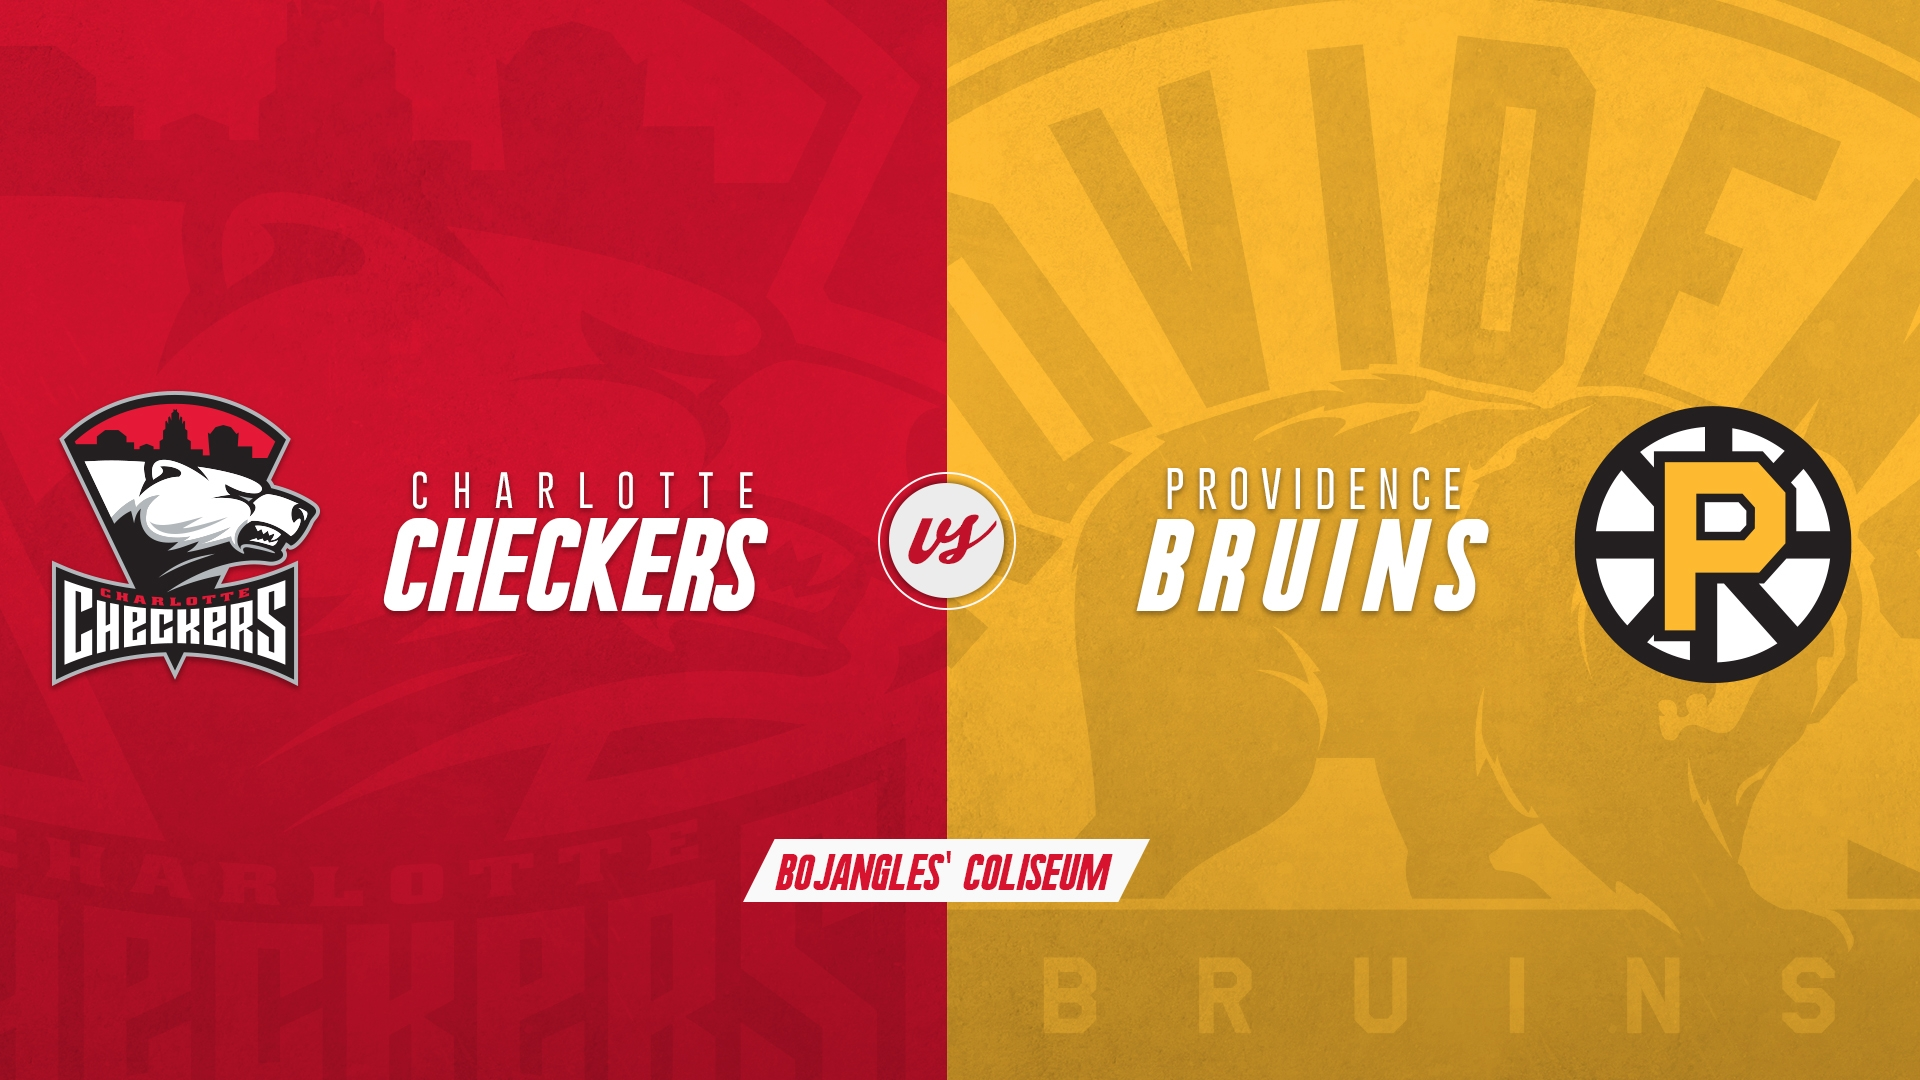 Charlotte Checkers vs. Providence Bruins